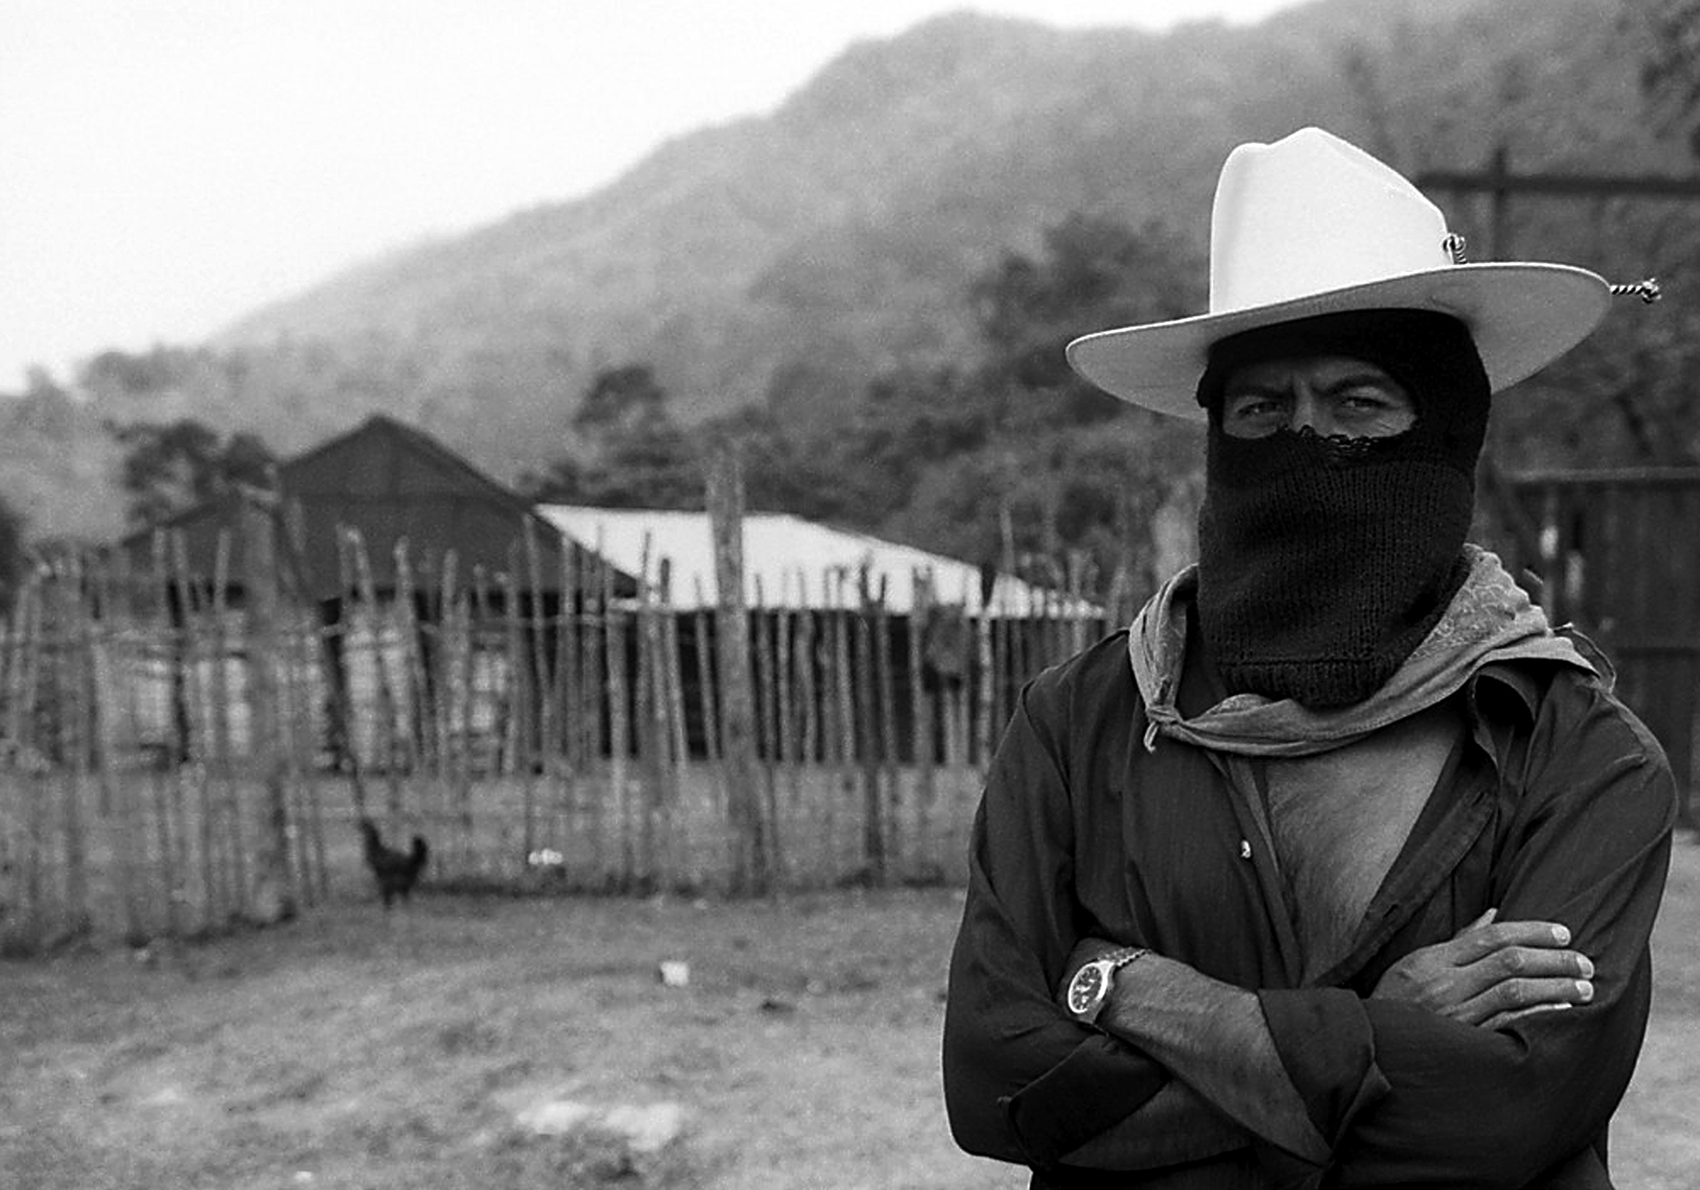 black and white photo of Zapatista Comandante in Chiapas Mexico